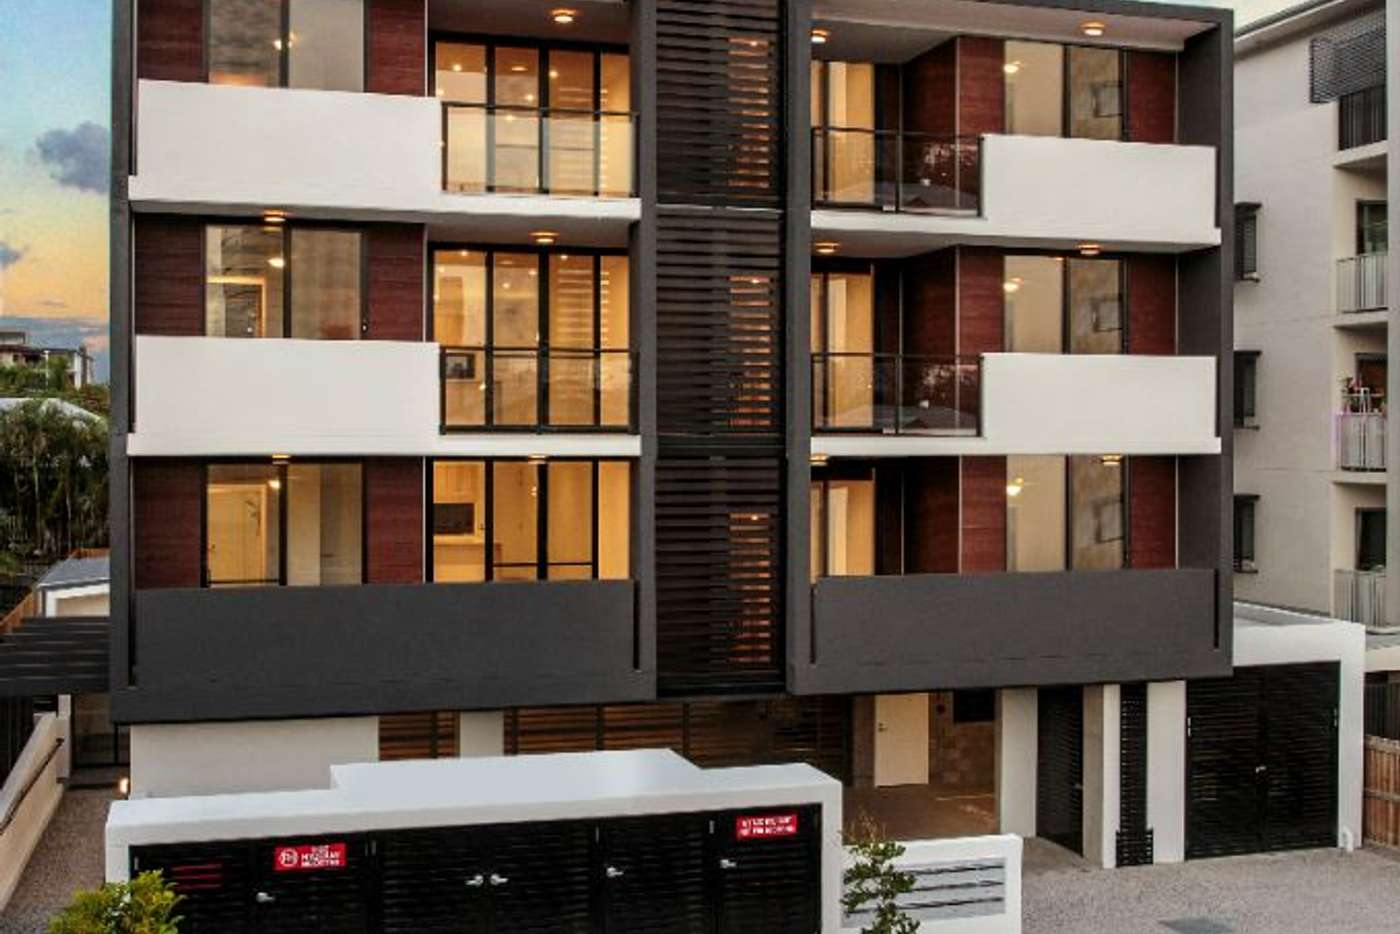 Main view of Homely apartment listing, 204/32 Gallway Street, Windsor QLD 4030